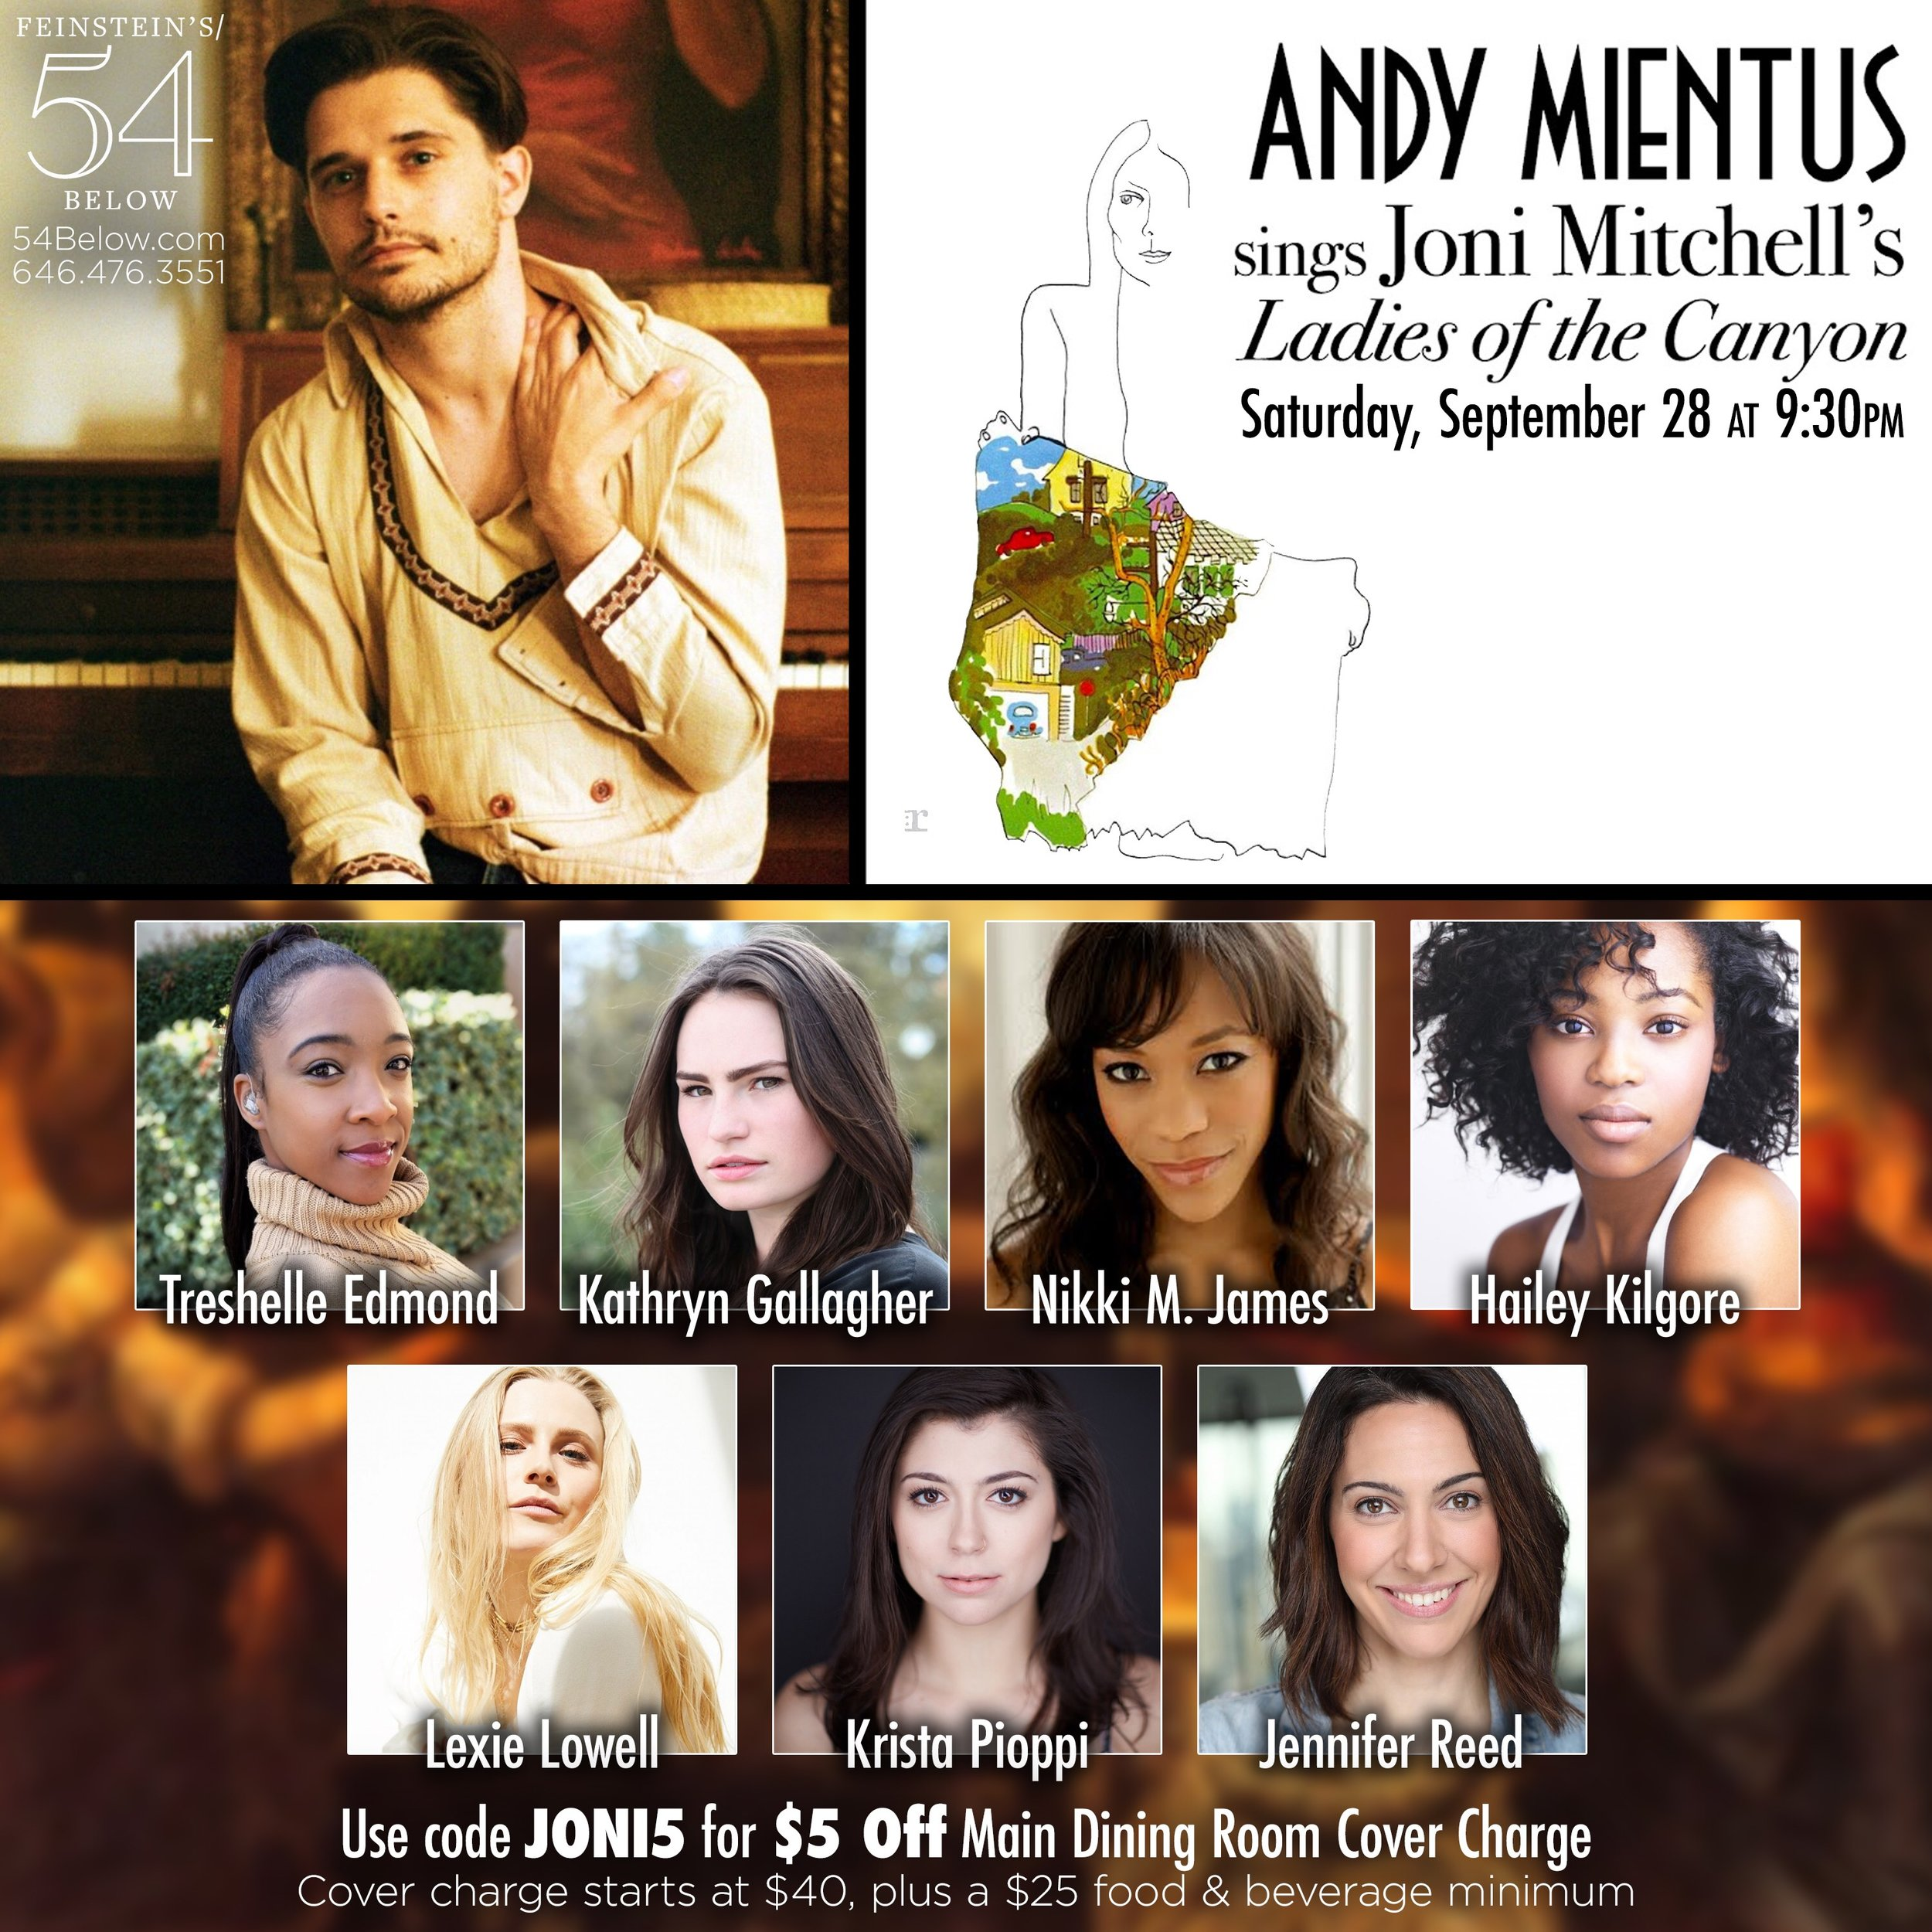 54below - Andy Mientus sings Joni Mitchell's Ladies of the Canyon with Special Guests